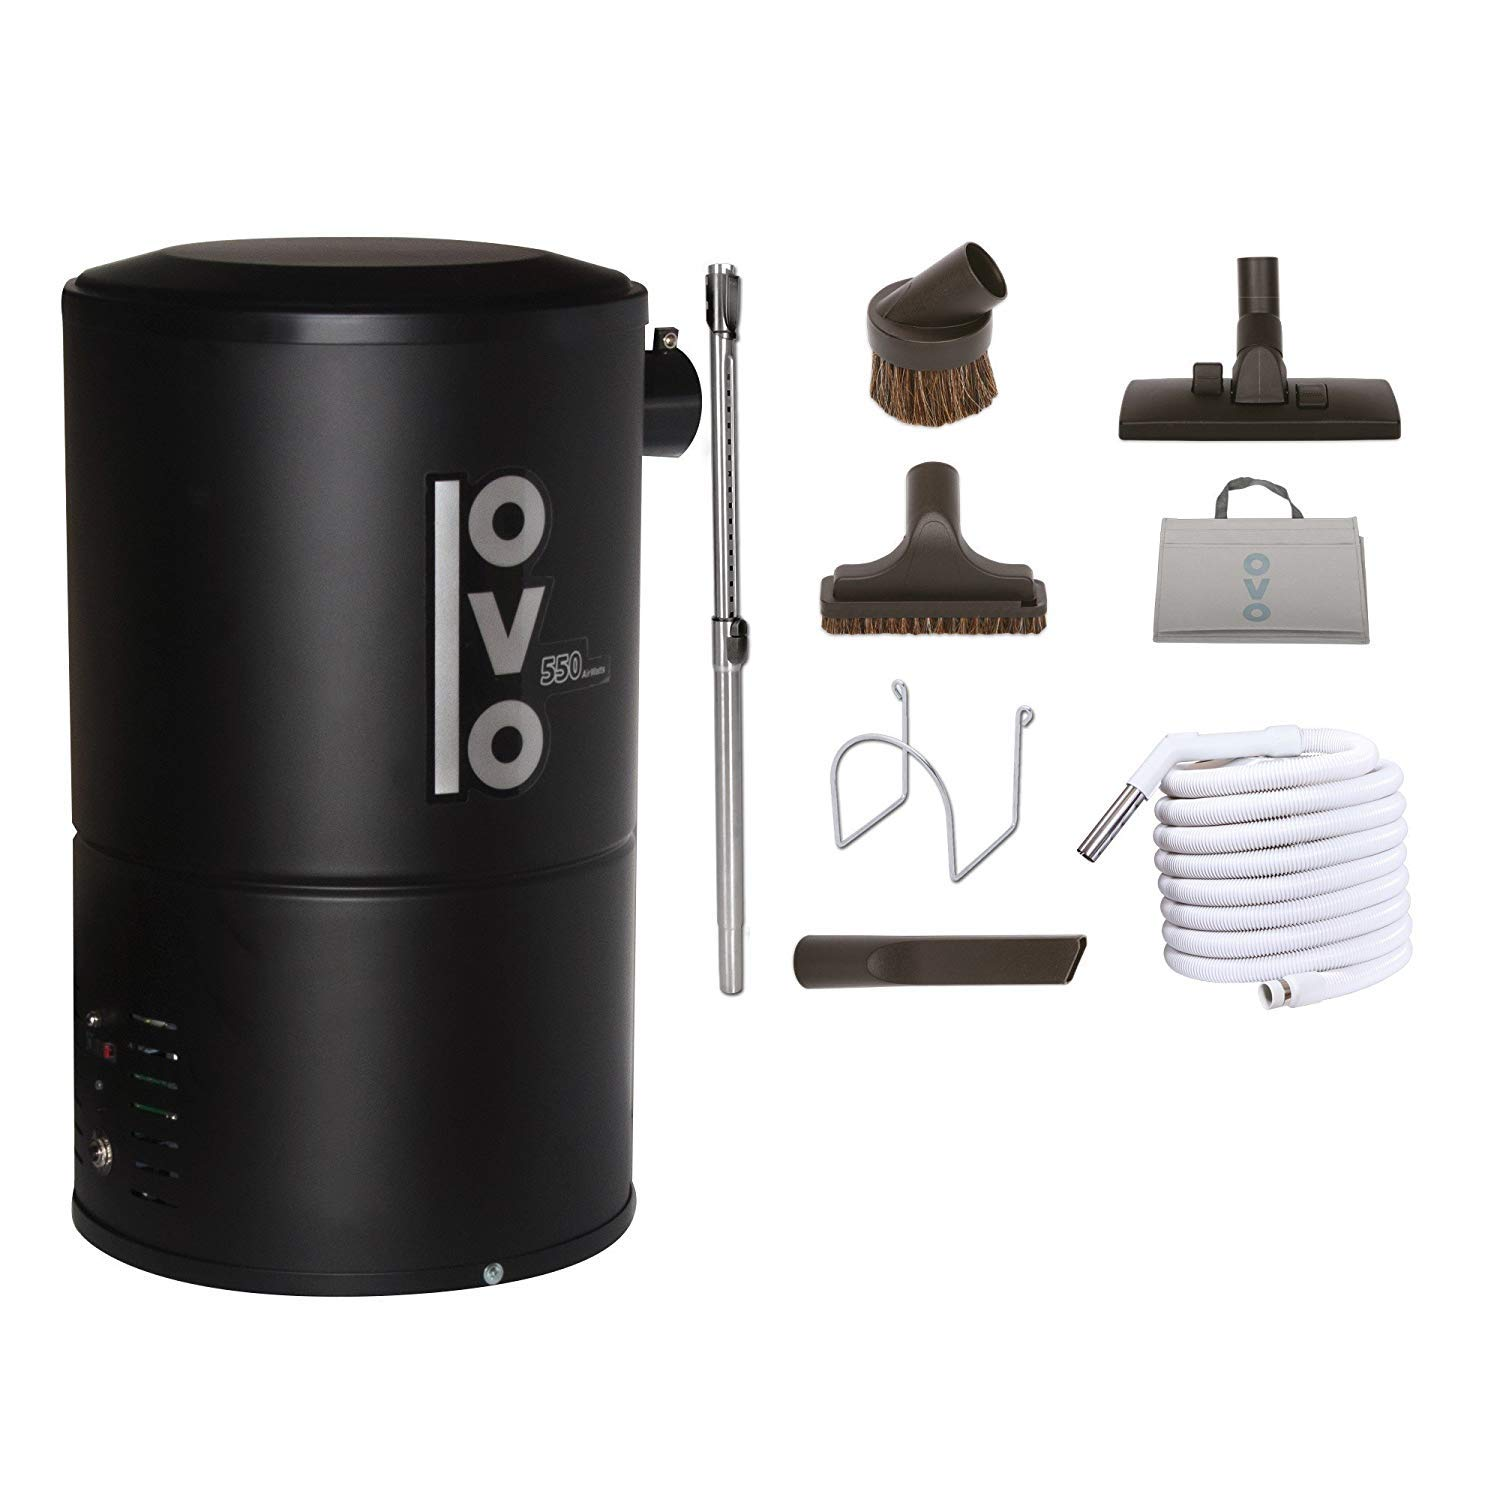 OVO Compact 550 Airwatts Central Vacuum System Power Unit with Garage Accessory Kit Included, Condo-Vac, Black (PAK55G) by OVO